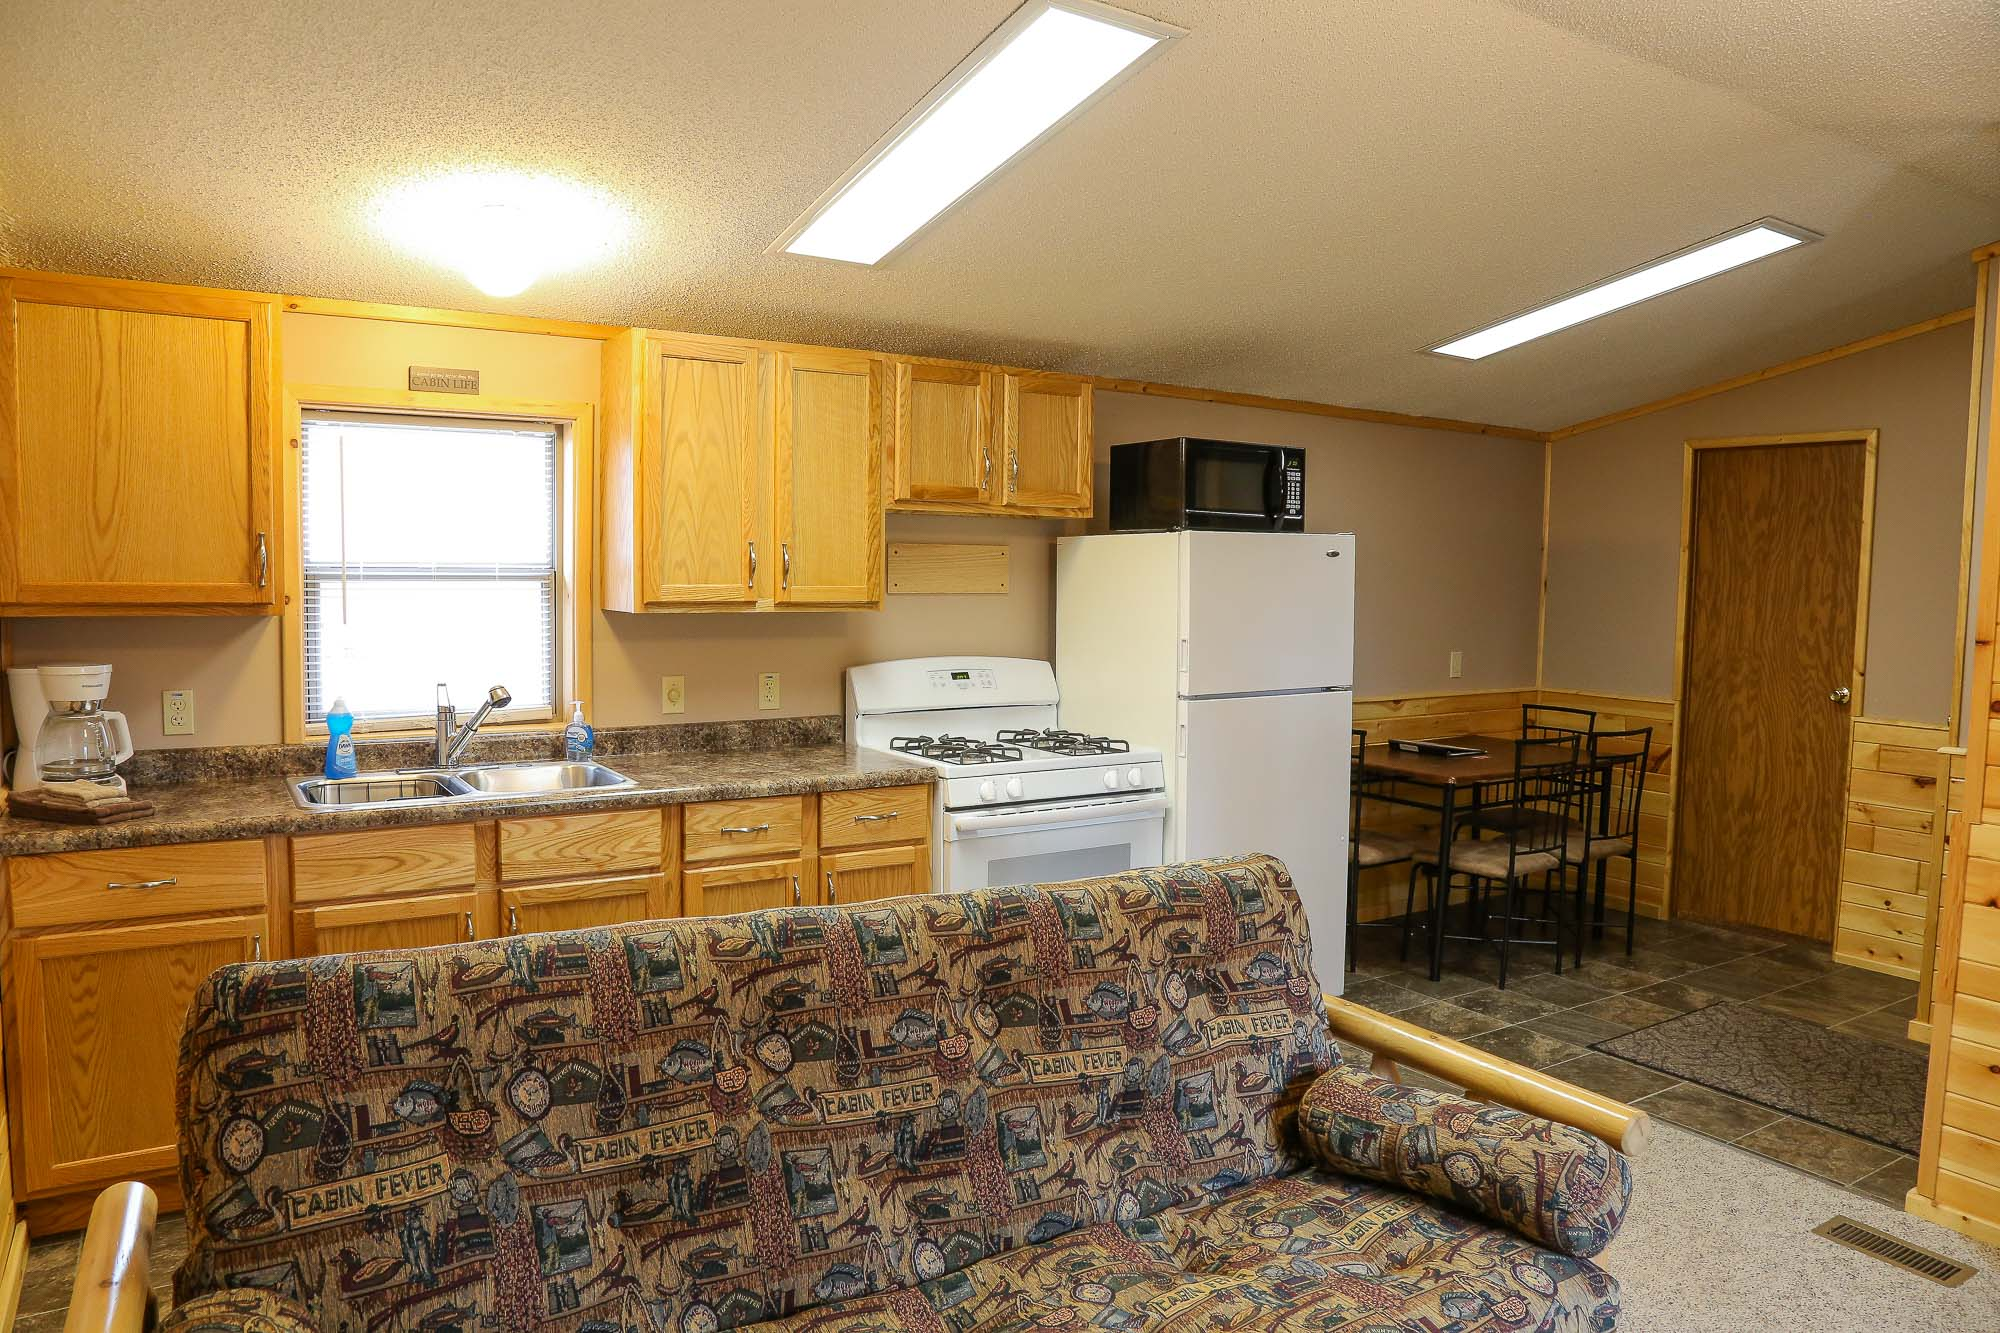 Photo of Duplex B Lodging at the Wilderness Resort in Lac La Belle Michigan